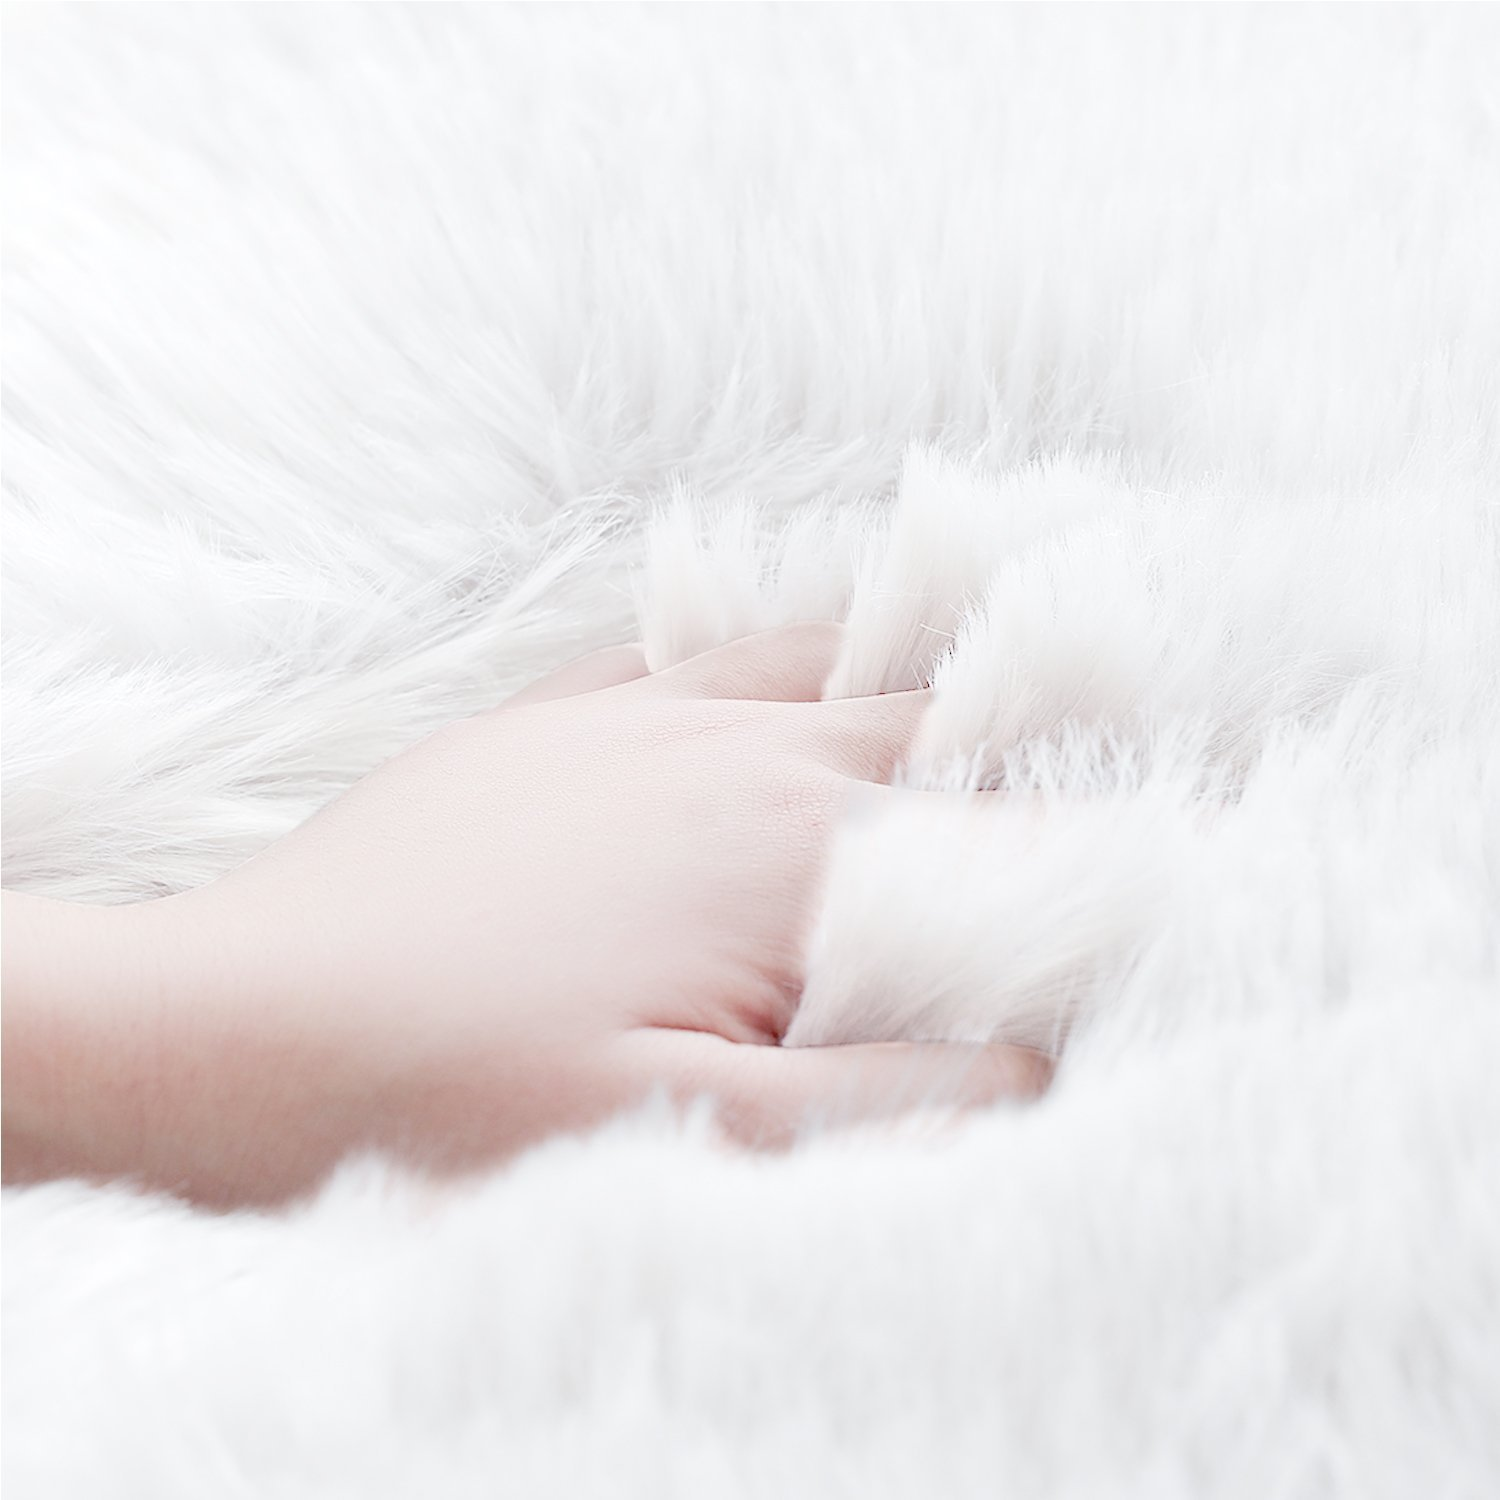 Aicehome Faux Fur Sheepskin Rug, Super Soft Fluffy Fur Rug for Bedroom, Floor, Sofa Chair,Chair Cover, Seat Pad, Couch Pad 2ft x 3ft (Ivory White)